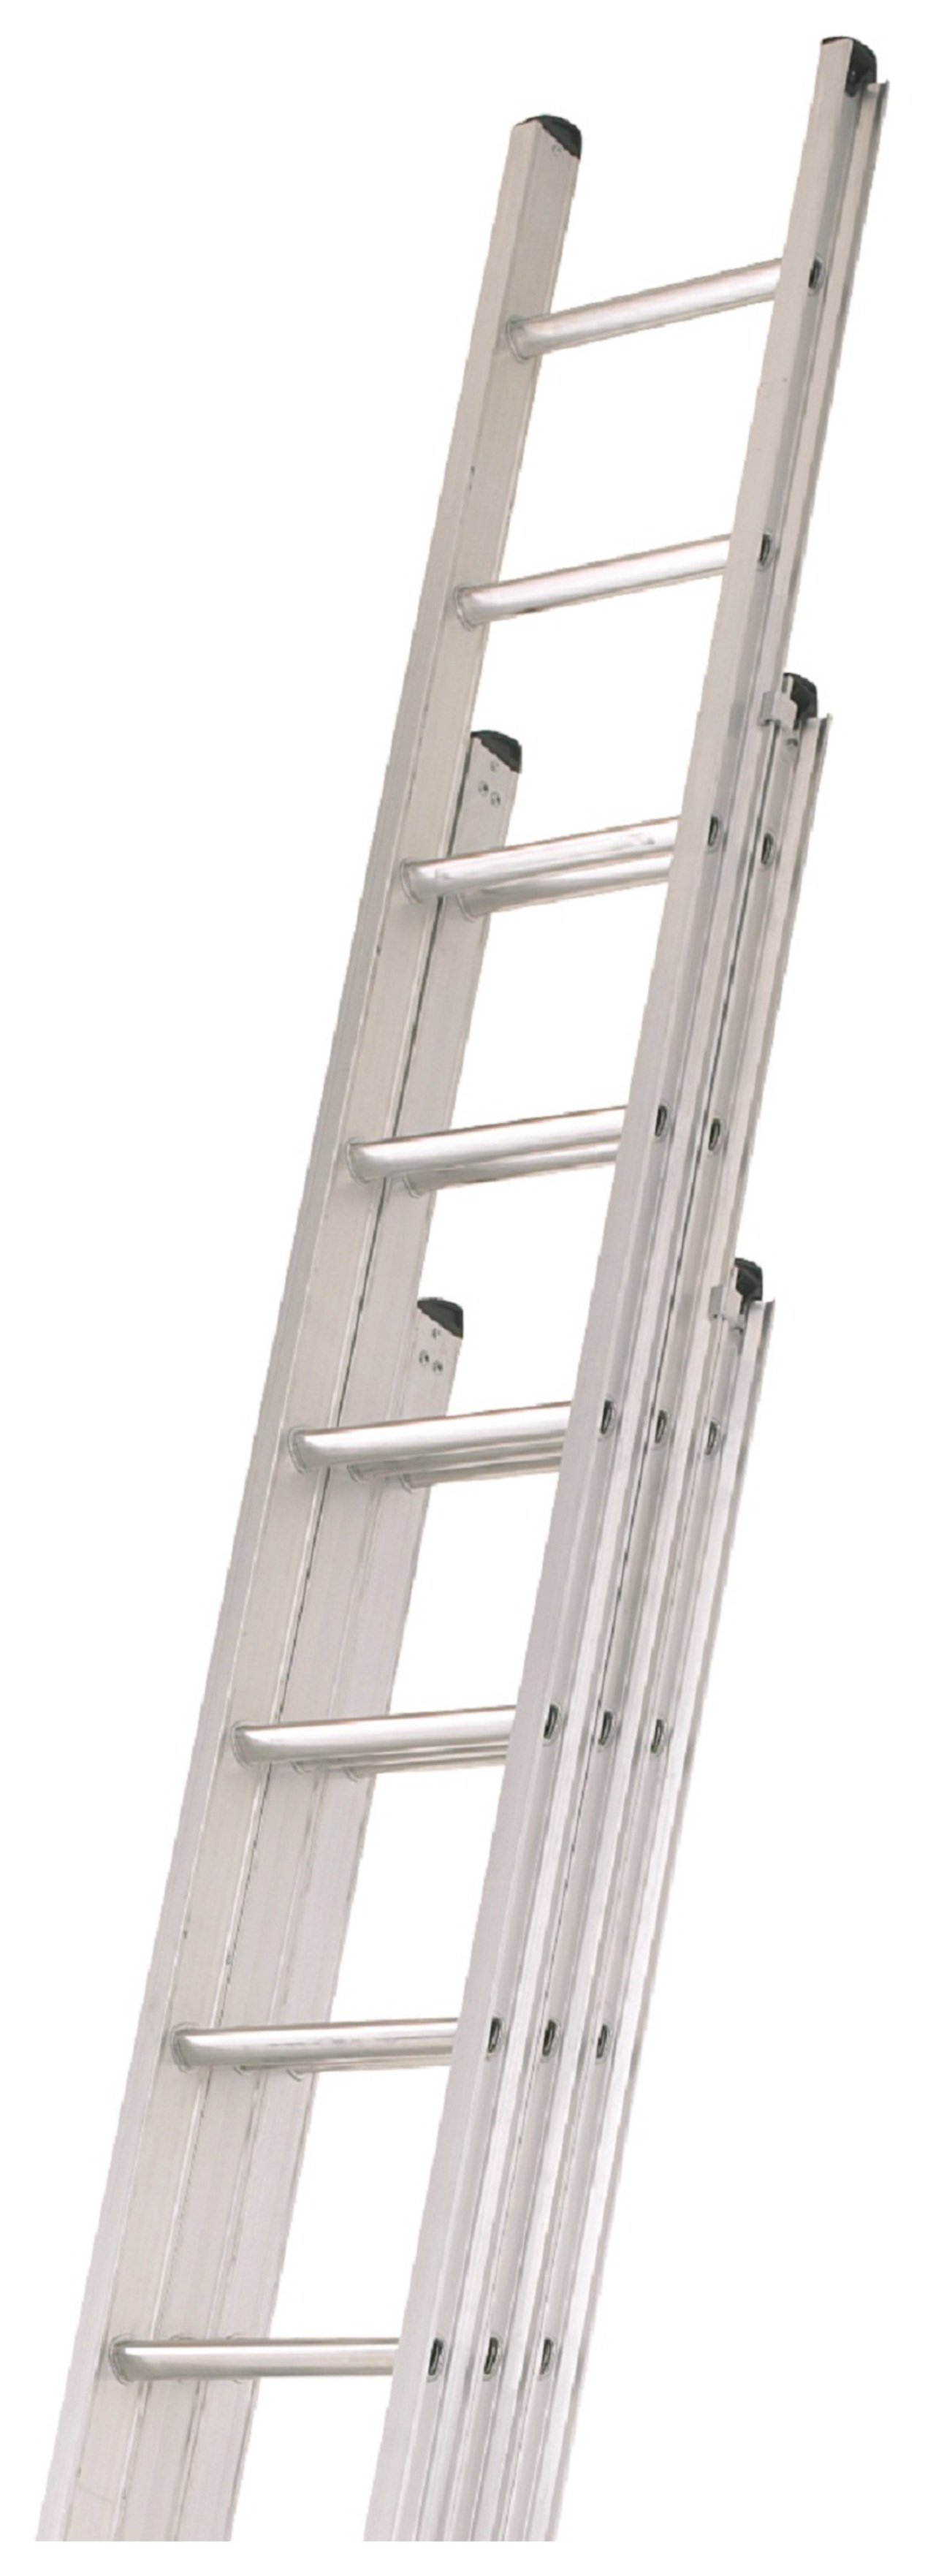 Abru 3.4M Triple Extension Ladder 8.74M Max *SWH